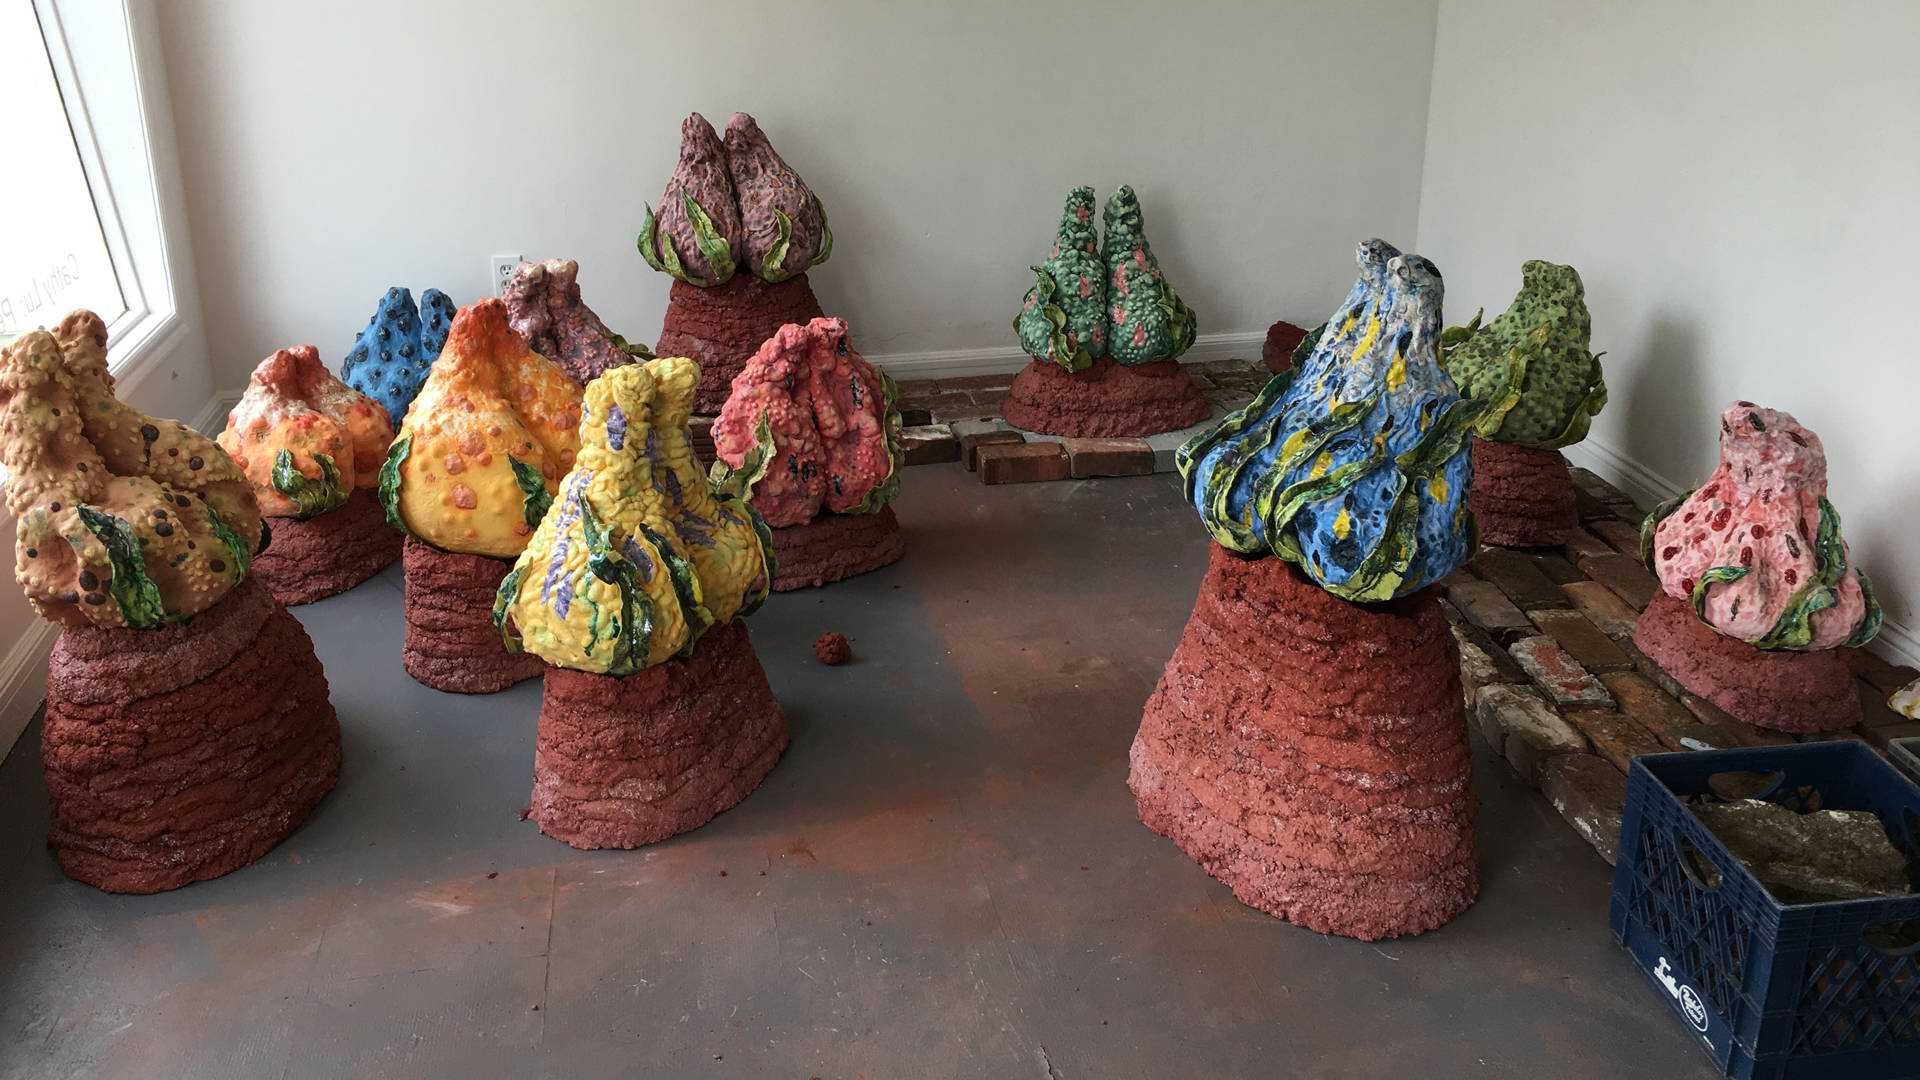 Cathy Lu's 'Peach Garden' mid-installation at Irving Street Projects. Courtesy of Irving Street Projects